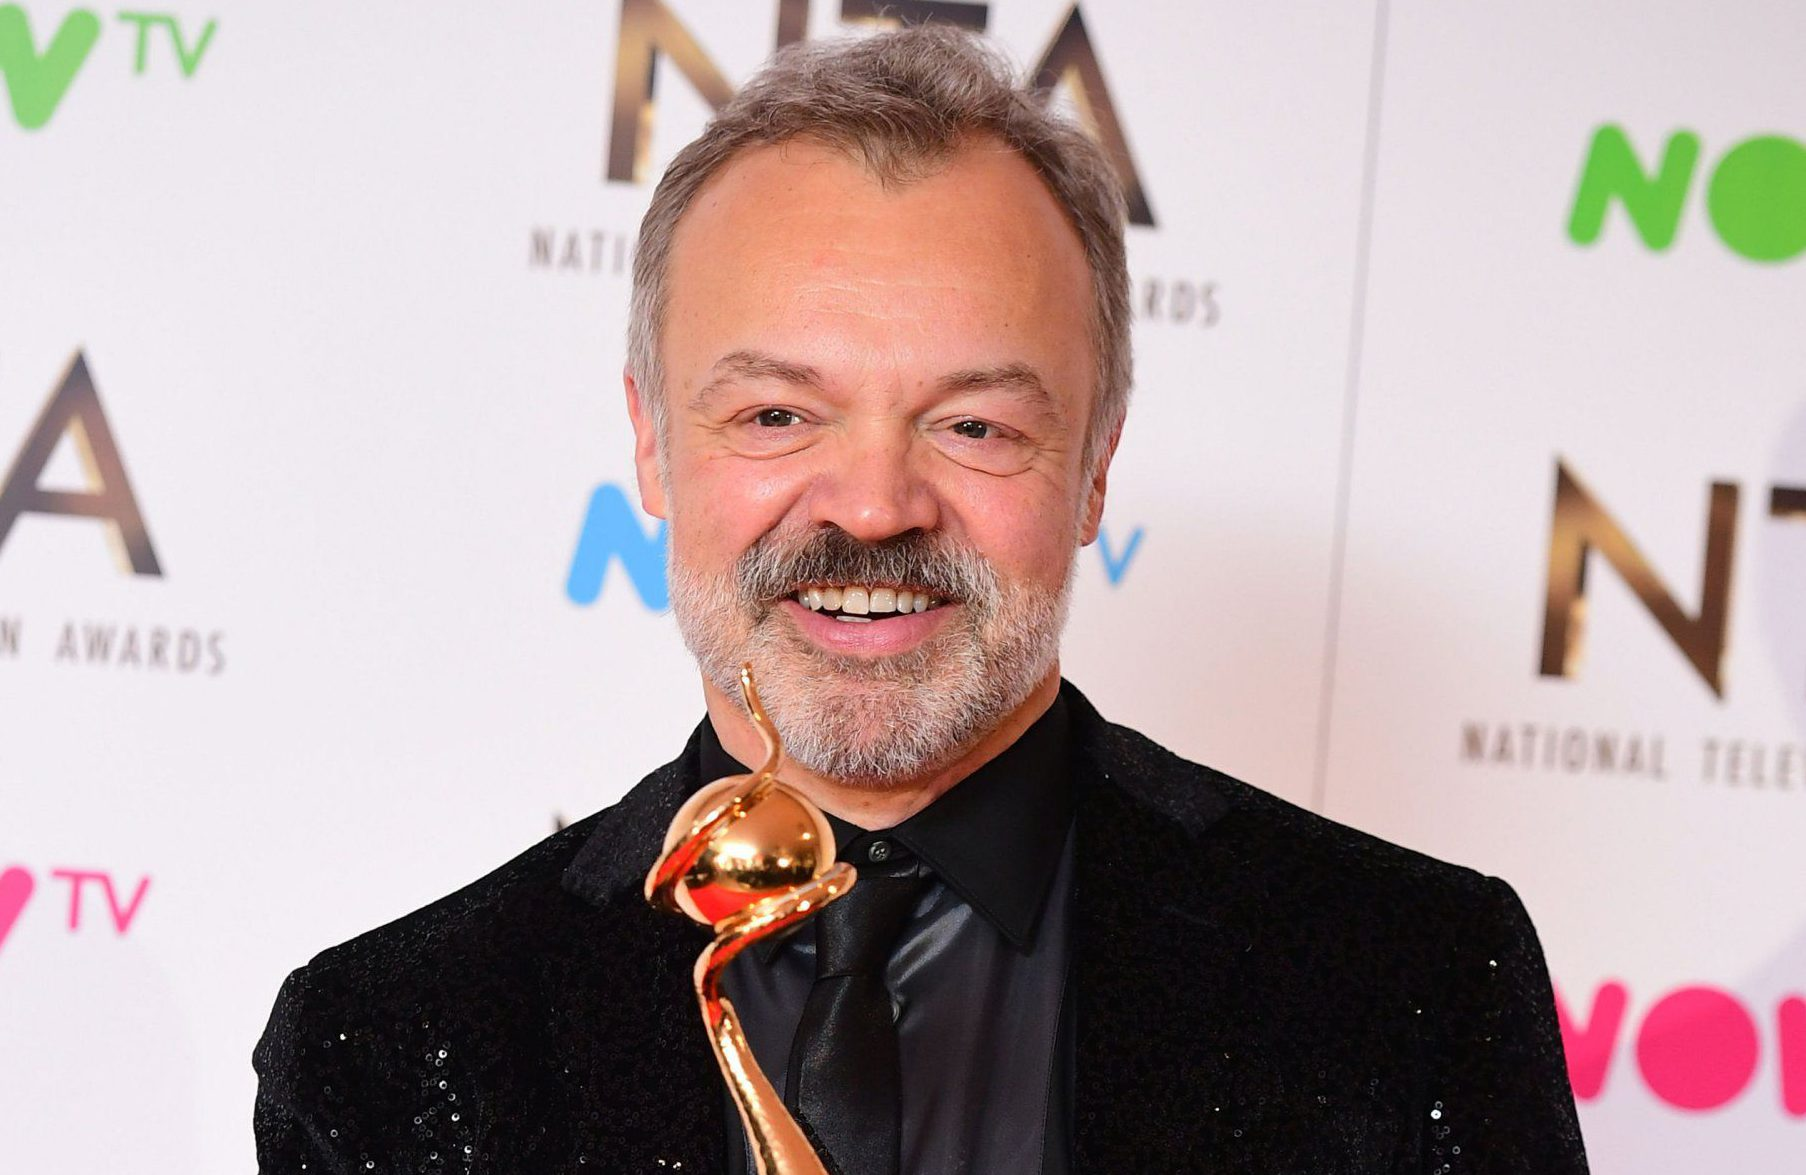 Graham Norton in the press room with the Special Recognition Award at the National Television Awards 2017, held at The O2 Arena, London. PRESS ASSOCIATION Photo. Picture date: 25th January, 2017. See PA Story SHOWBIZ NTAs. Photo credit should read: Ian West/PA Wire